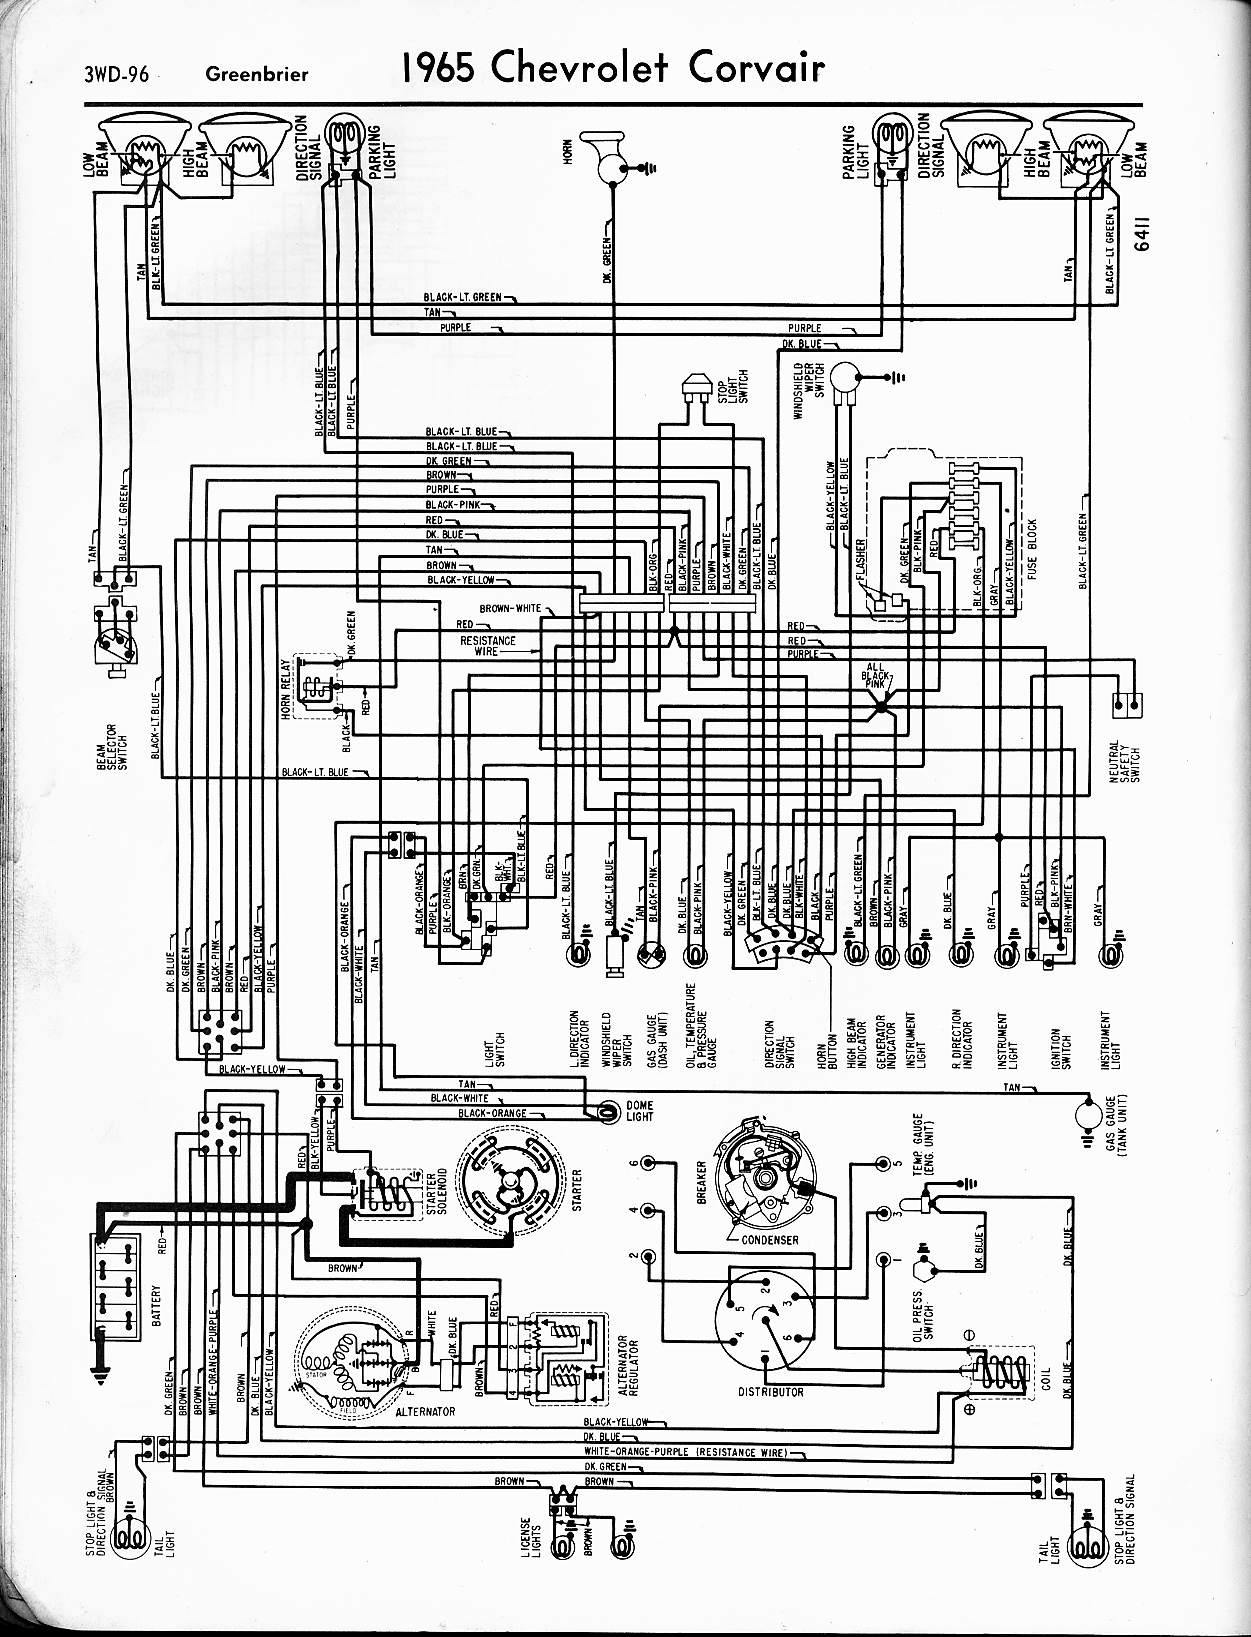 68 Corvair Wiring Diagram Schematic Diagrams 1965 Mustang Heater Switch Ignition For You 1963